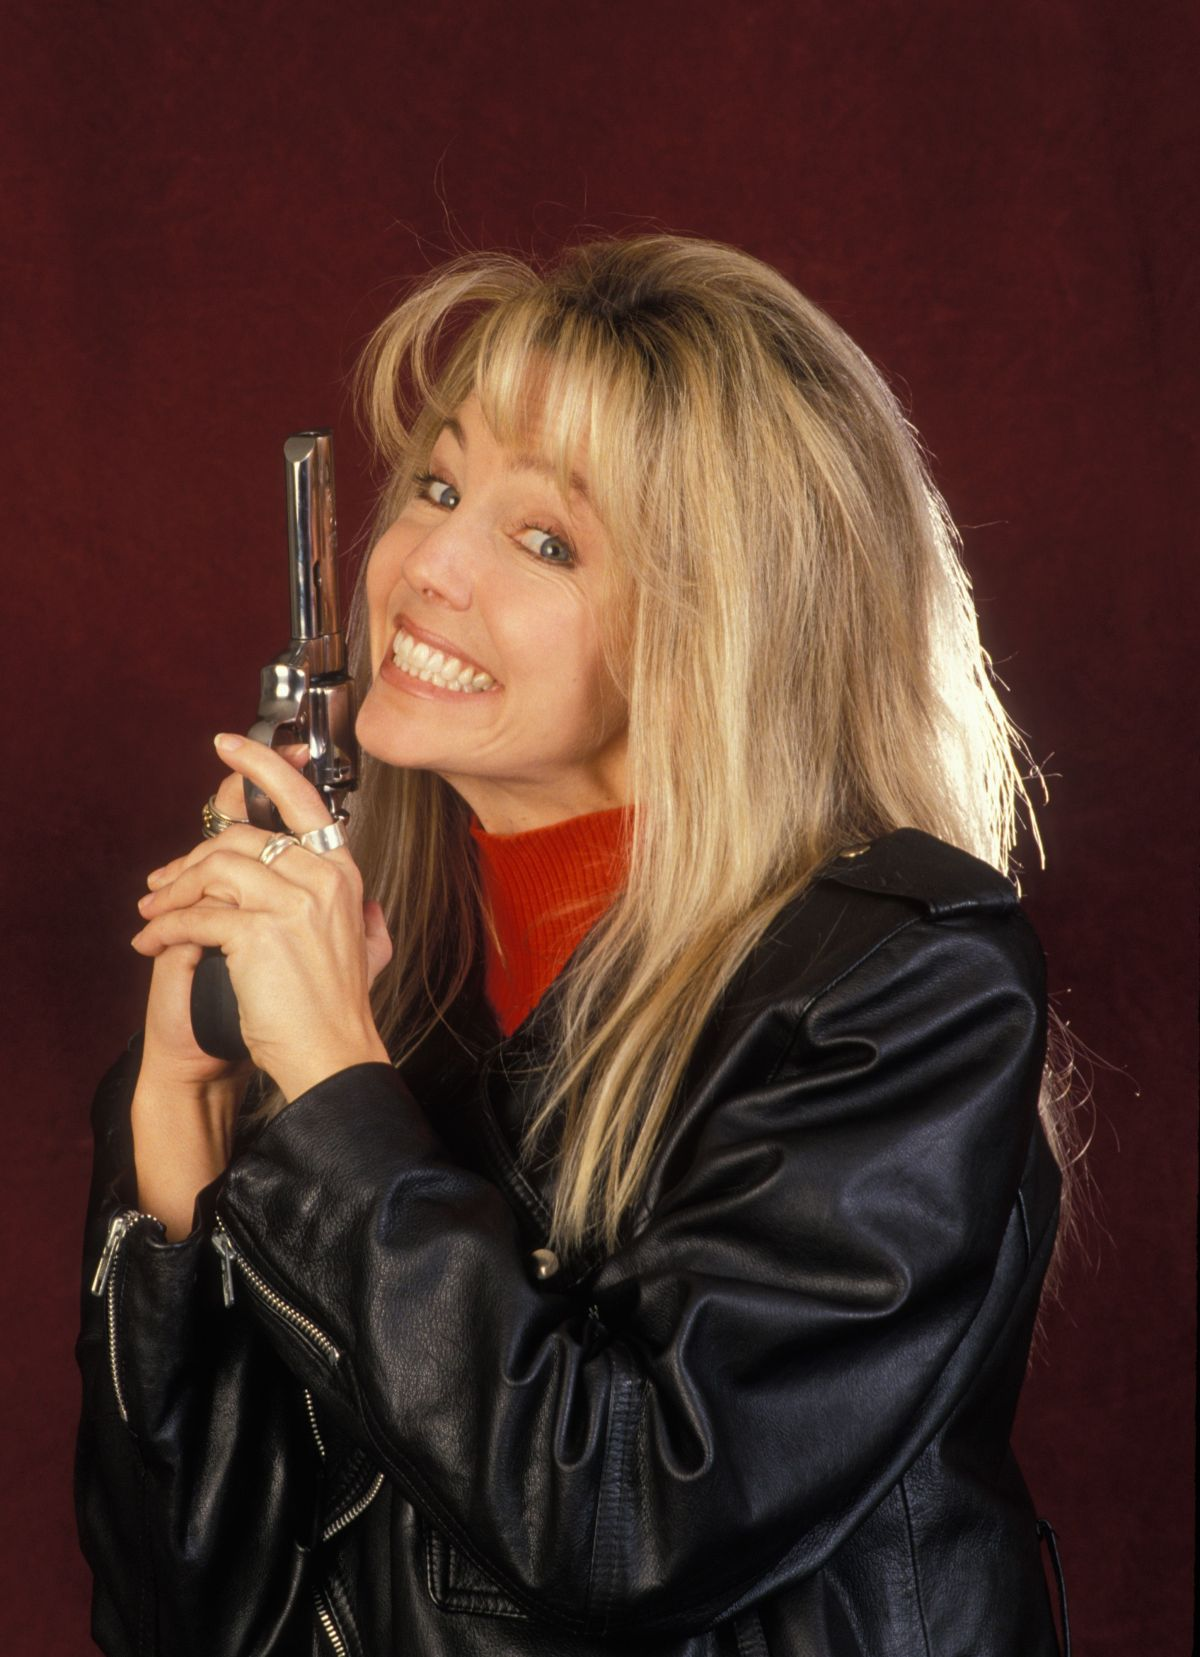 Heather Locklear 1983: Heather Locklear Promotional Photoshoot For T.J. Hooker TV